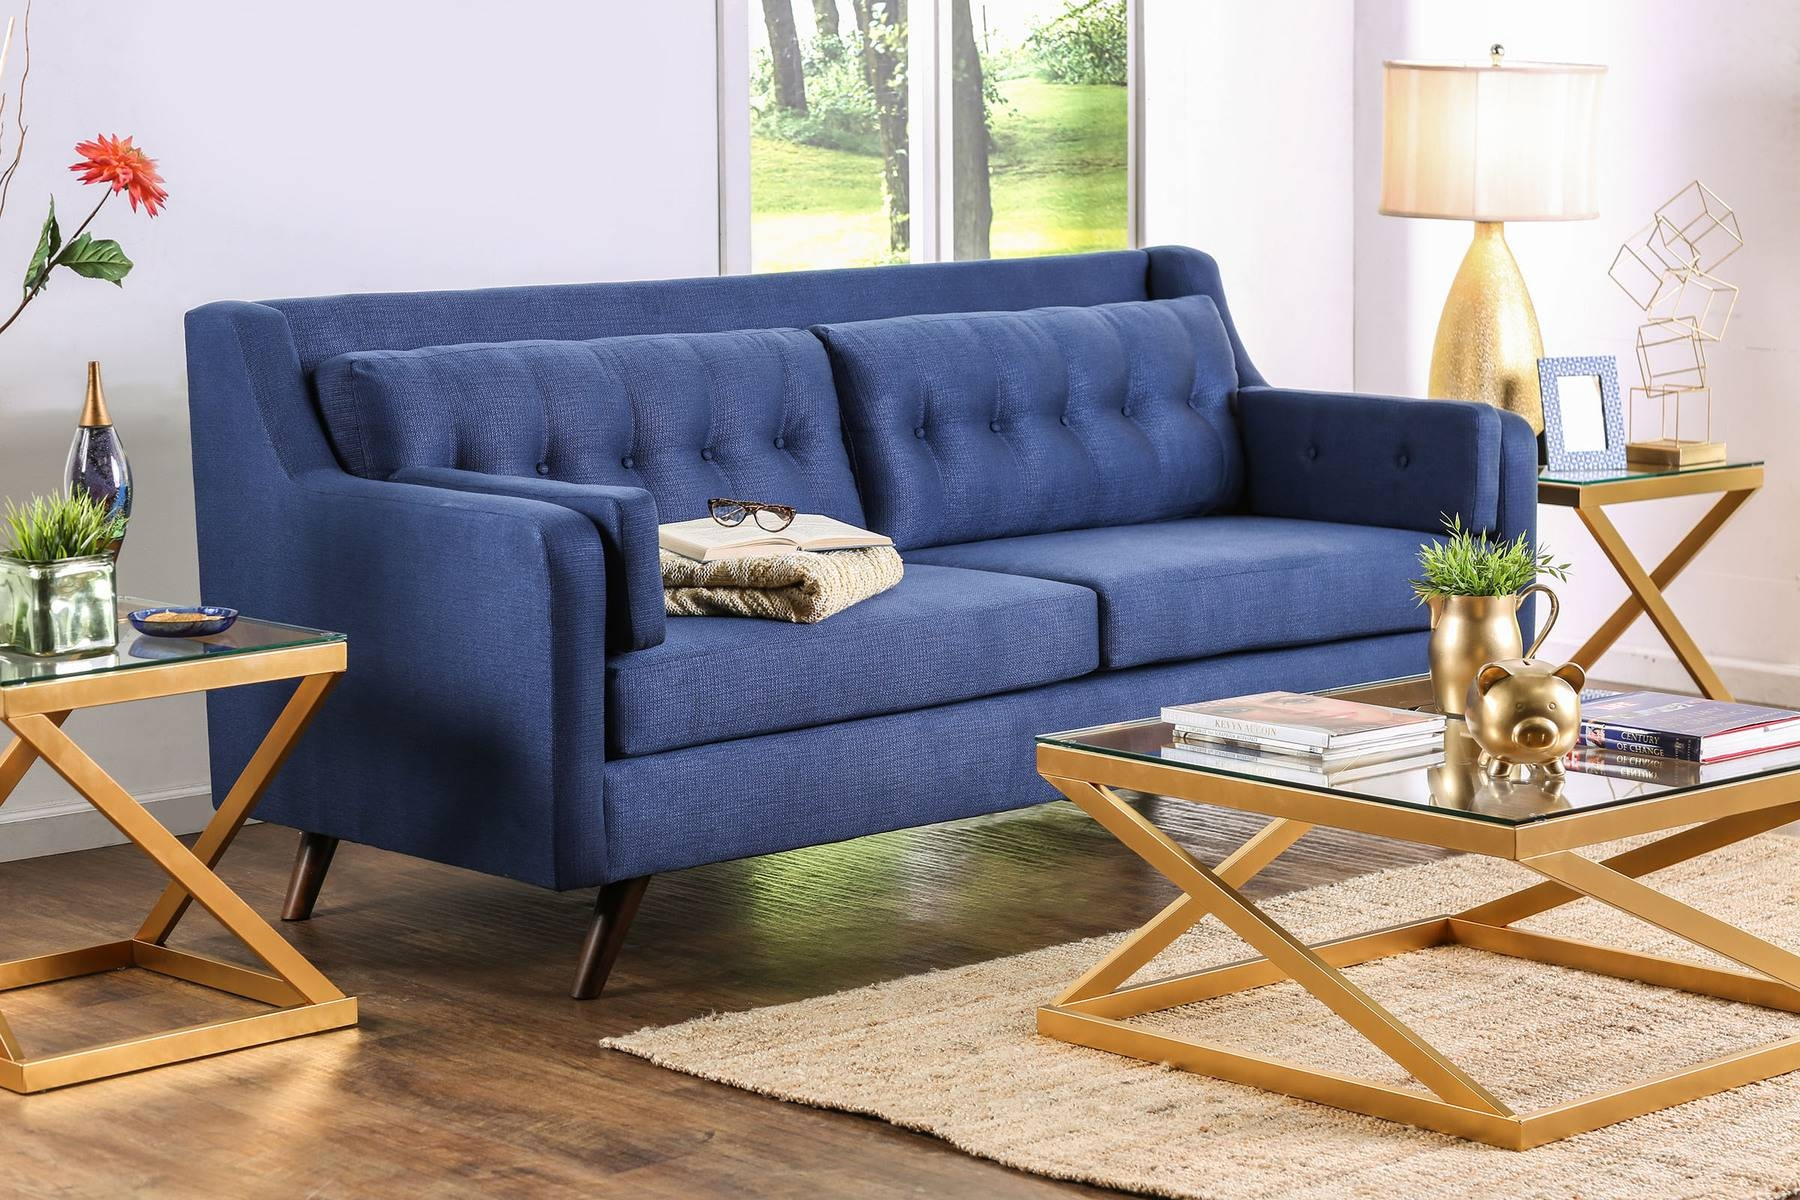 Hallie Blue Sofa Sm8822-Sf Furniture Of America Fabric Sofas At pertaining to Fabric Sofas (Image 17 of 30)